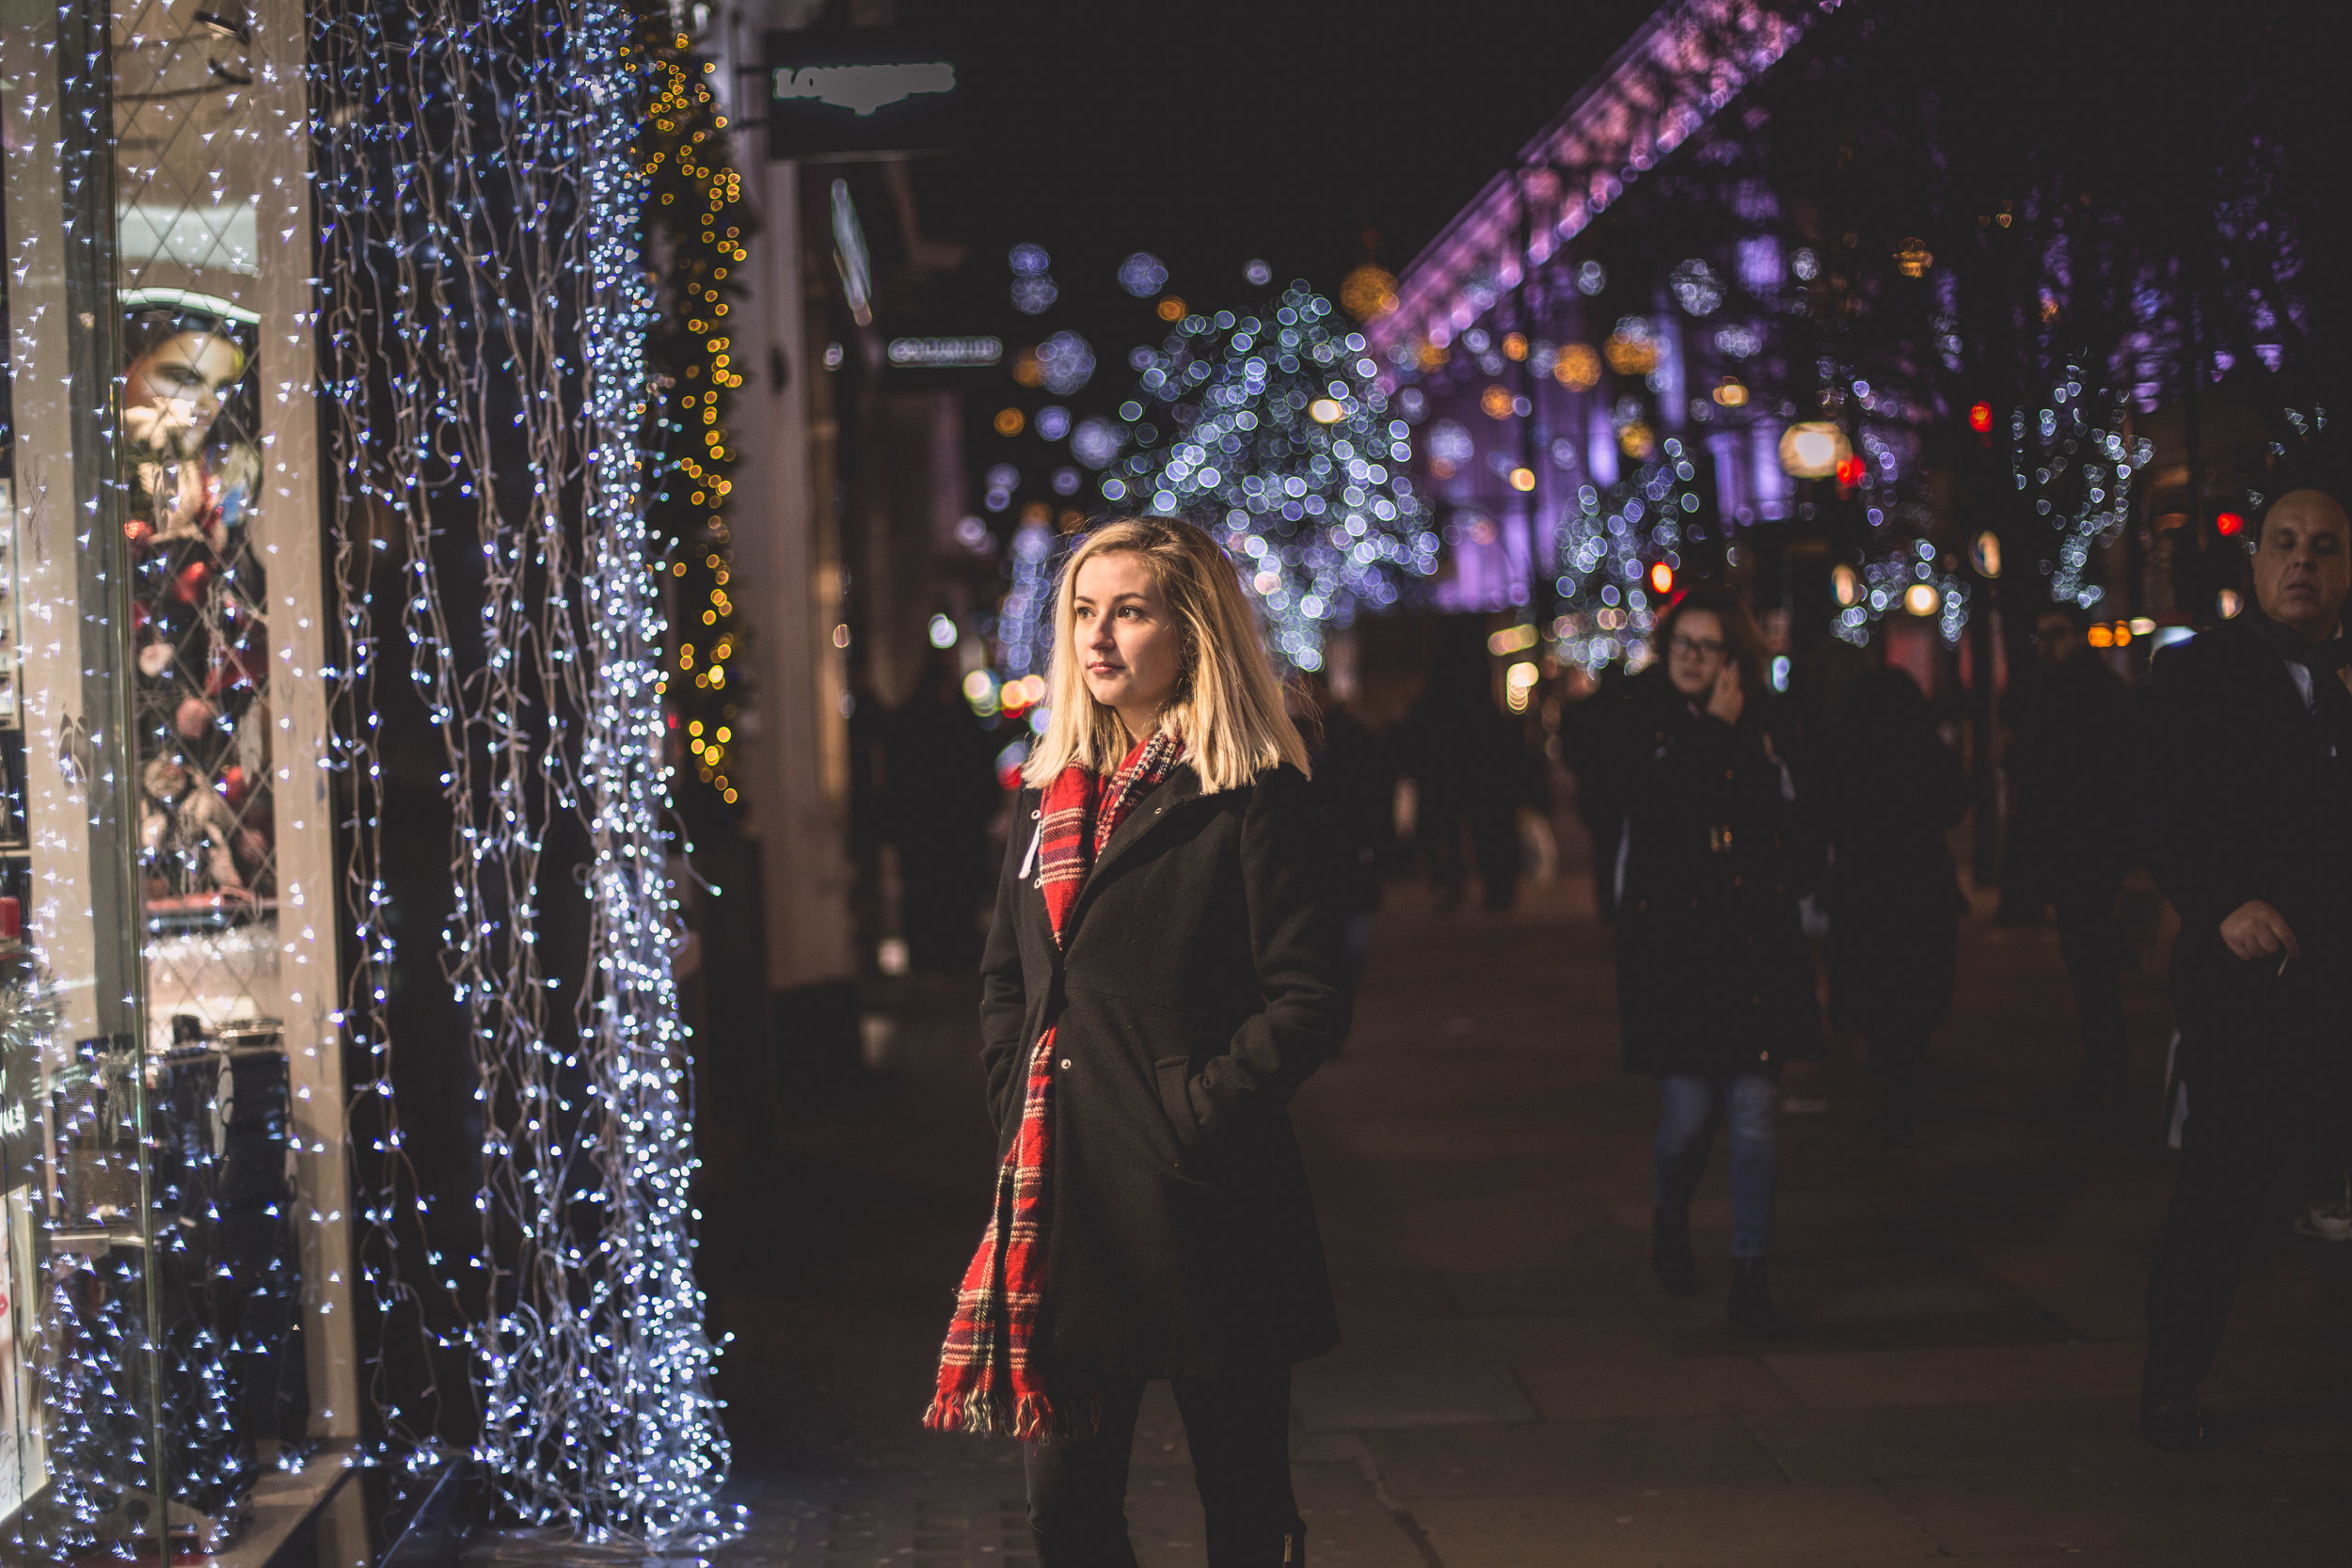 Regents Street Bokeh Photo Shoot London Christmas